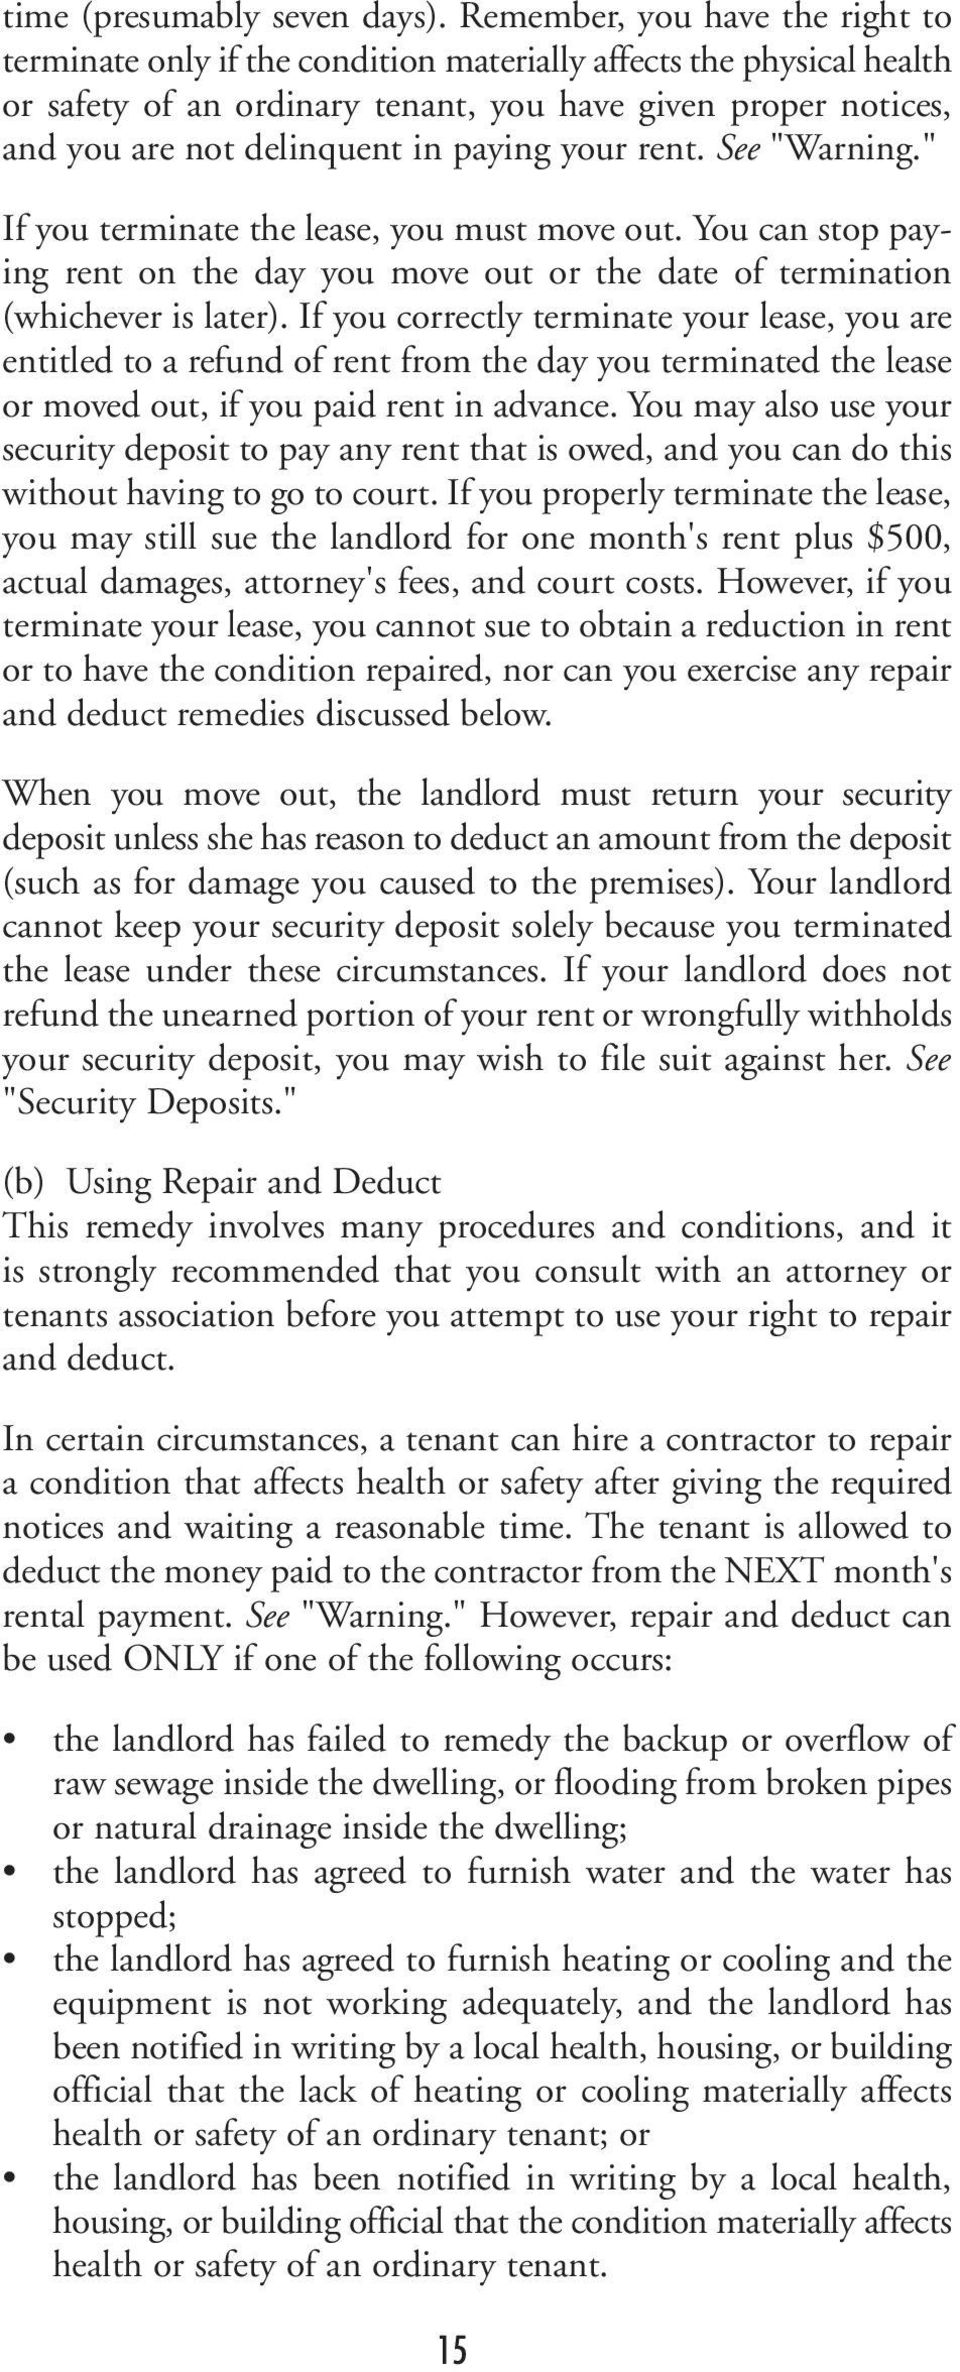 "paying your rent. See ""Warning."" If you terminate the lease, you must move out. You can stop paying rent on the day you move out or the date of termination (whichever is later)."